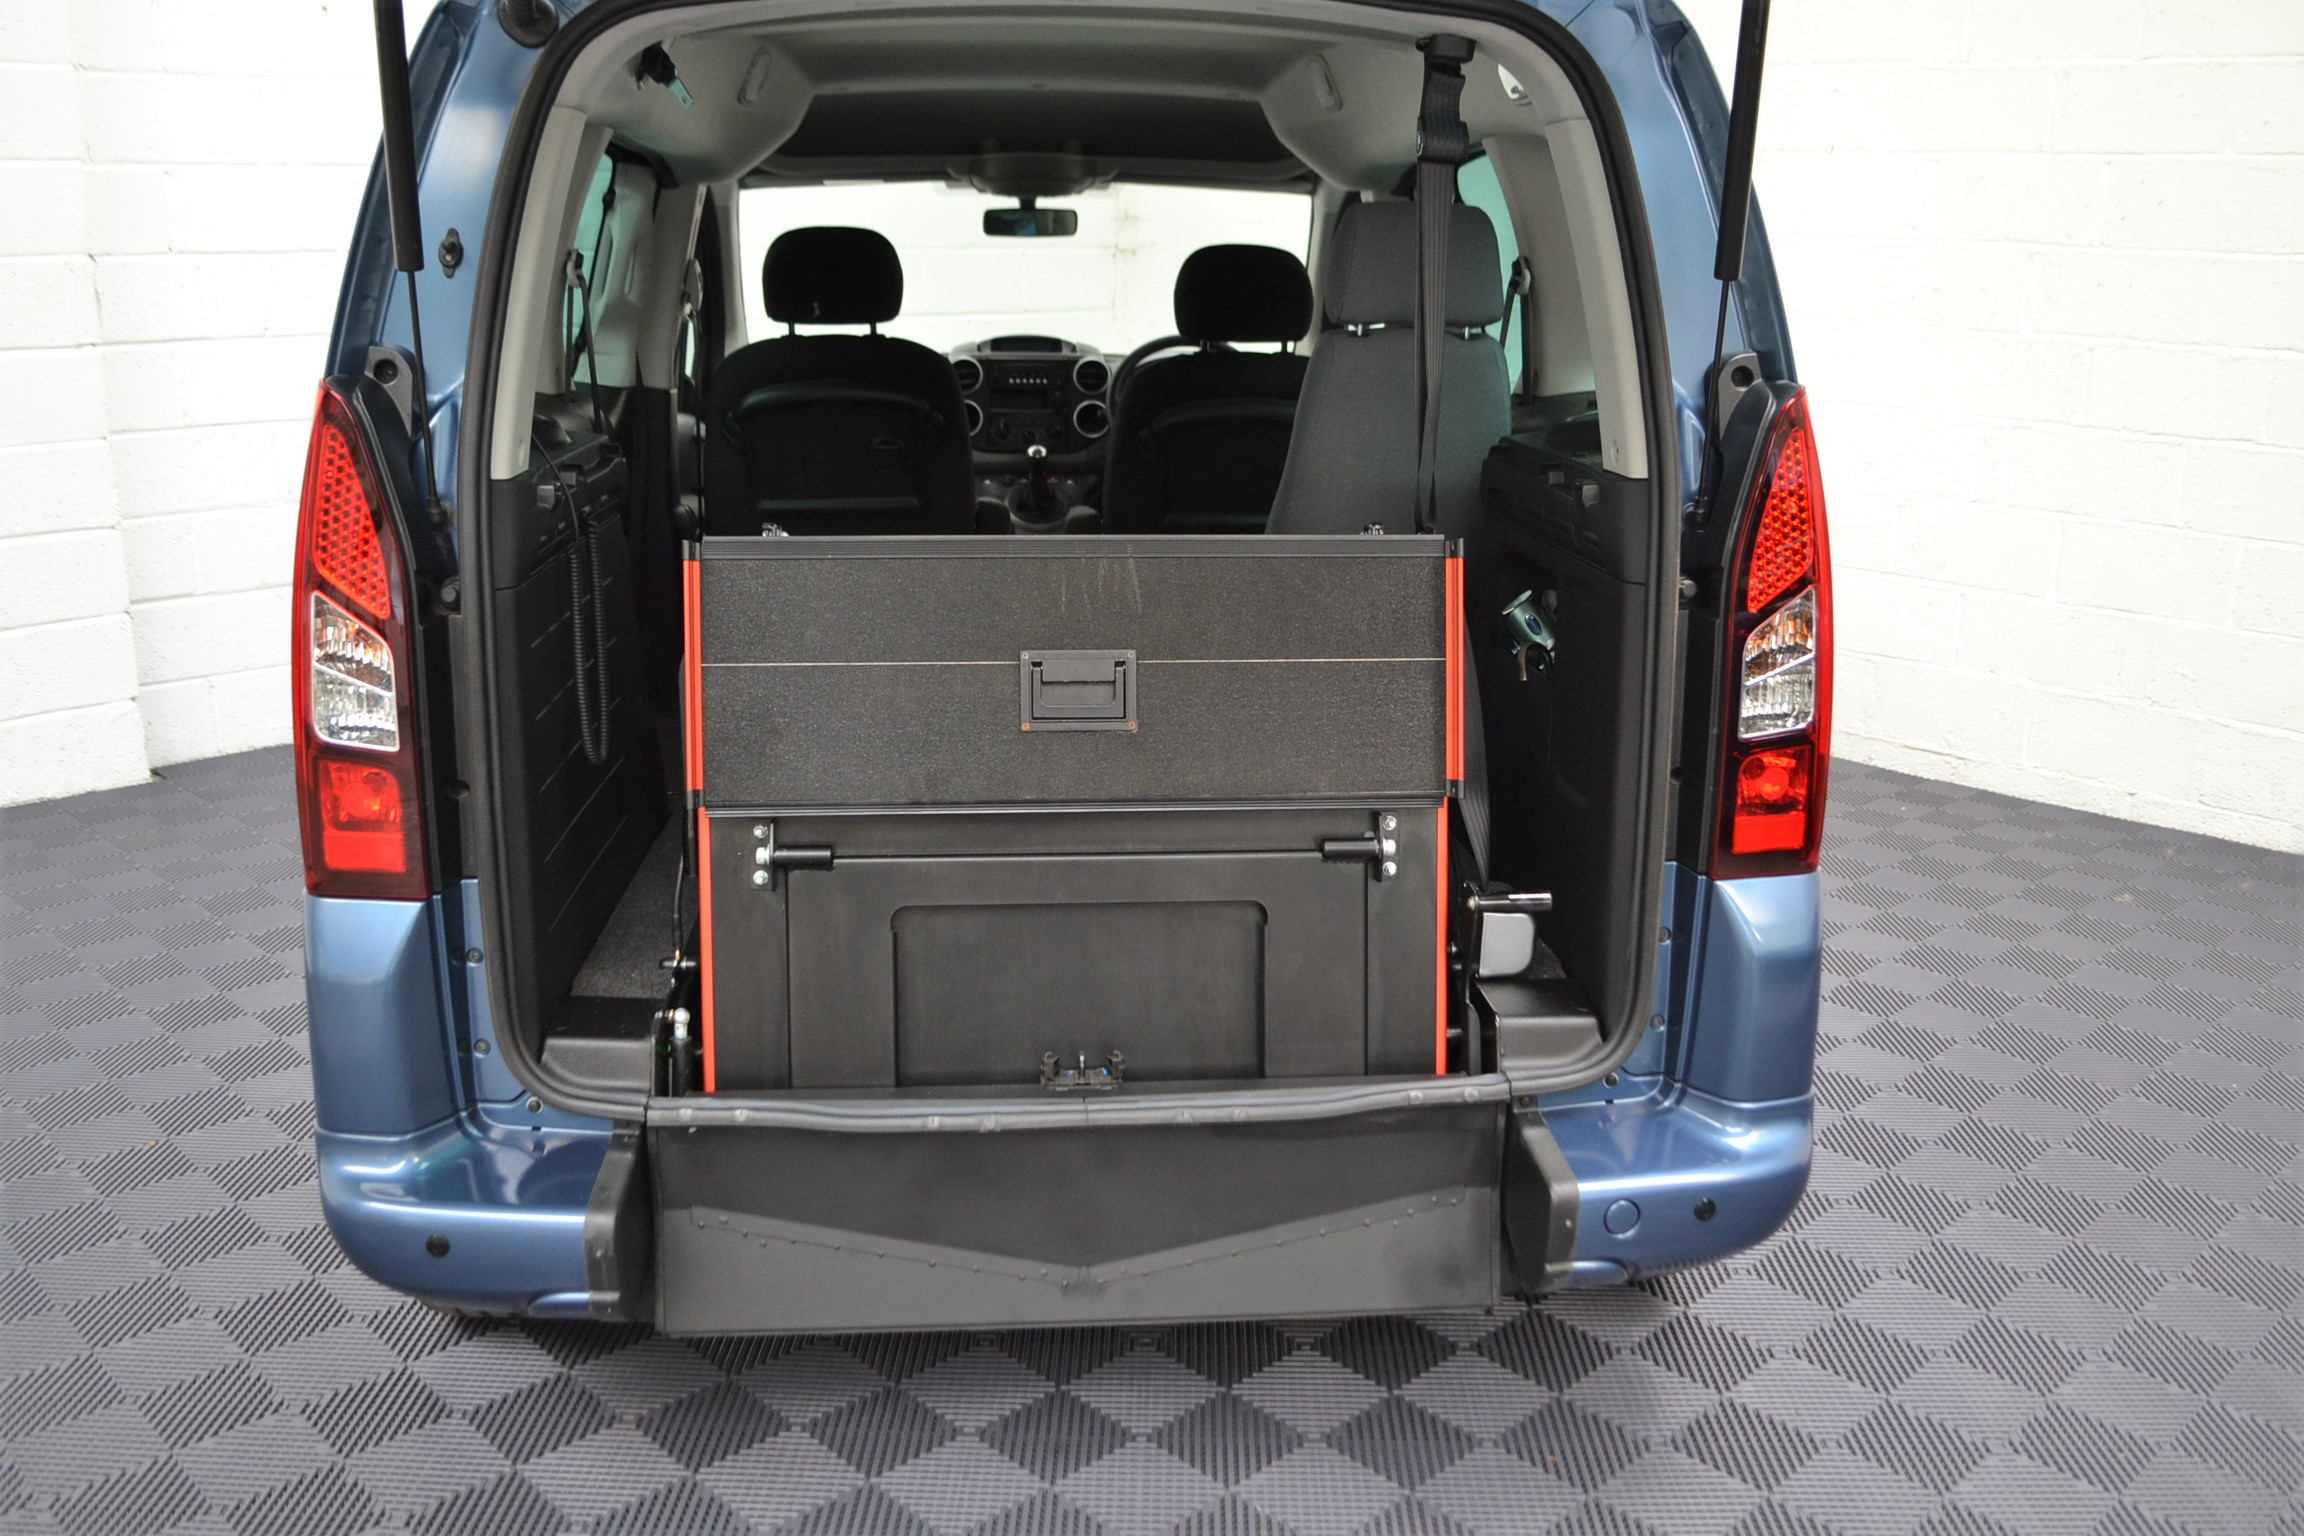 WAV Cars For Sale Bristol Wheelchair Accessible Vehicles Used For Sale Somerset Devon Dorset Bath Peugeot Partner SF16 FHY 19